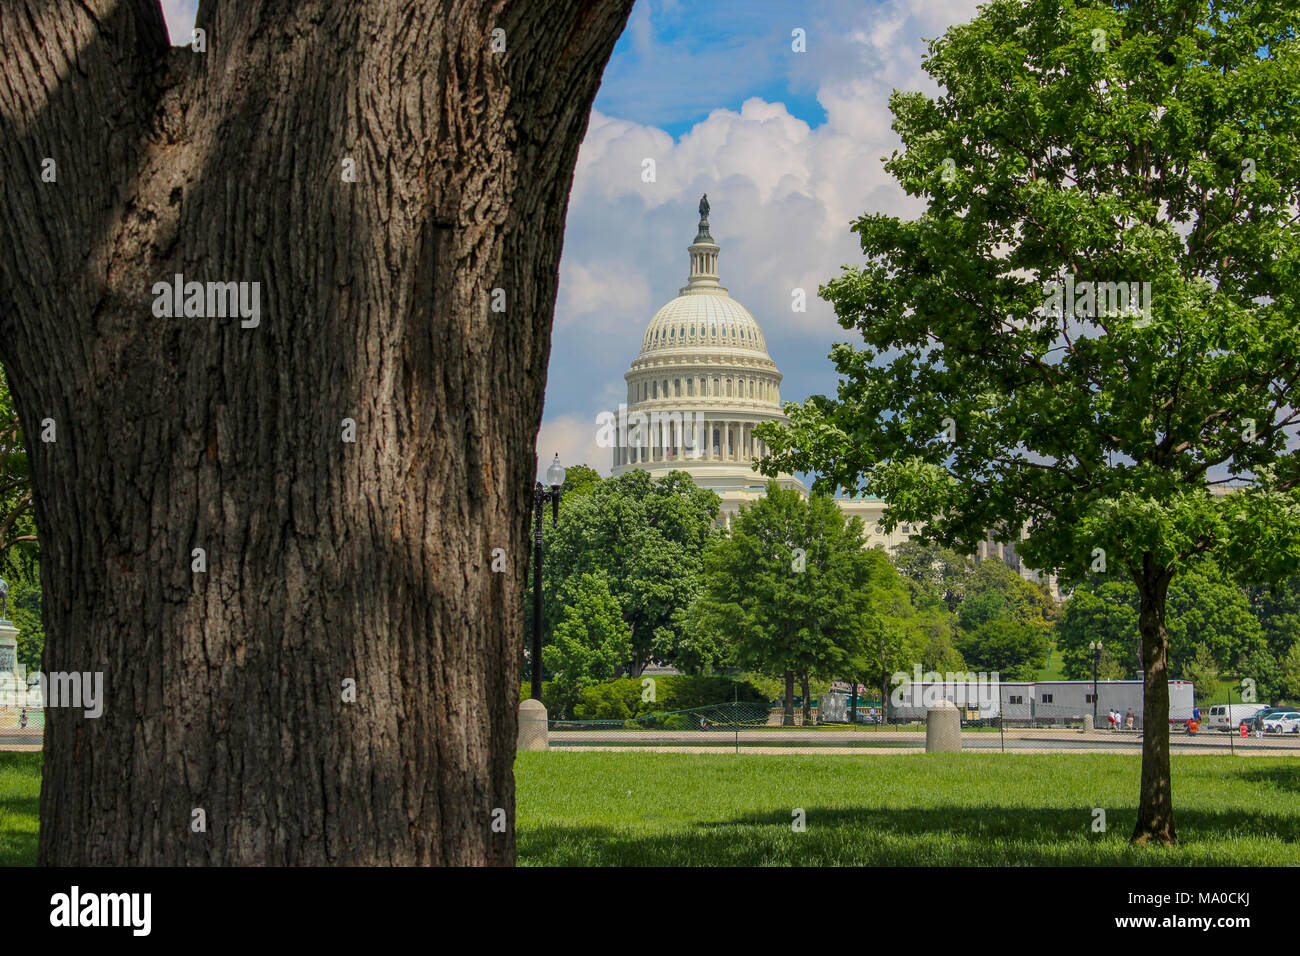 Capitol in Washington DC, view from behind a tree, blue sky